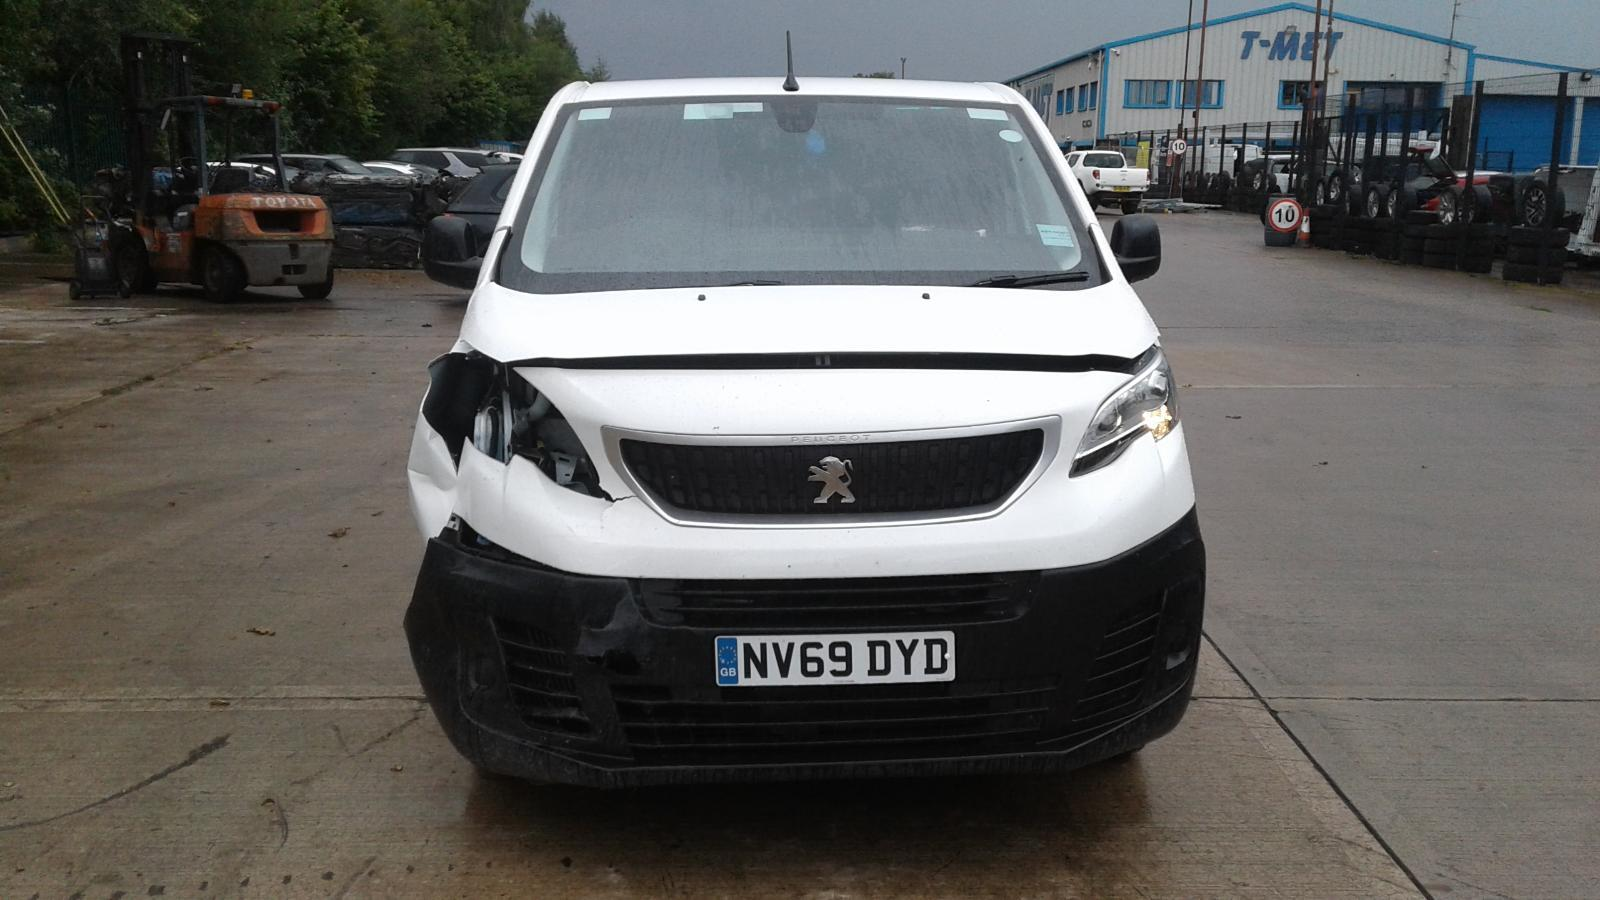 2020 PEUGEOT EXPERT FOR SALE £9750 ONO Image